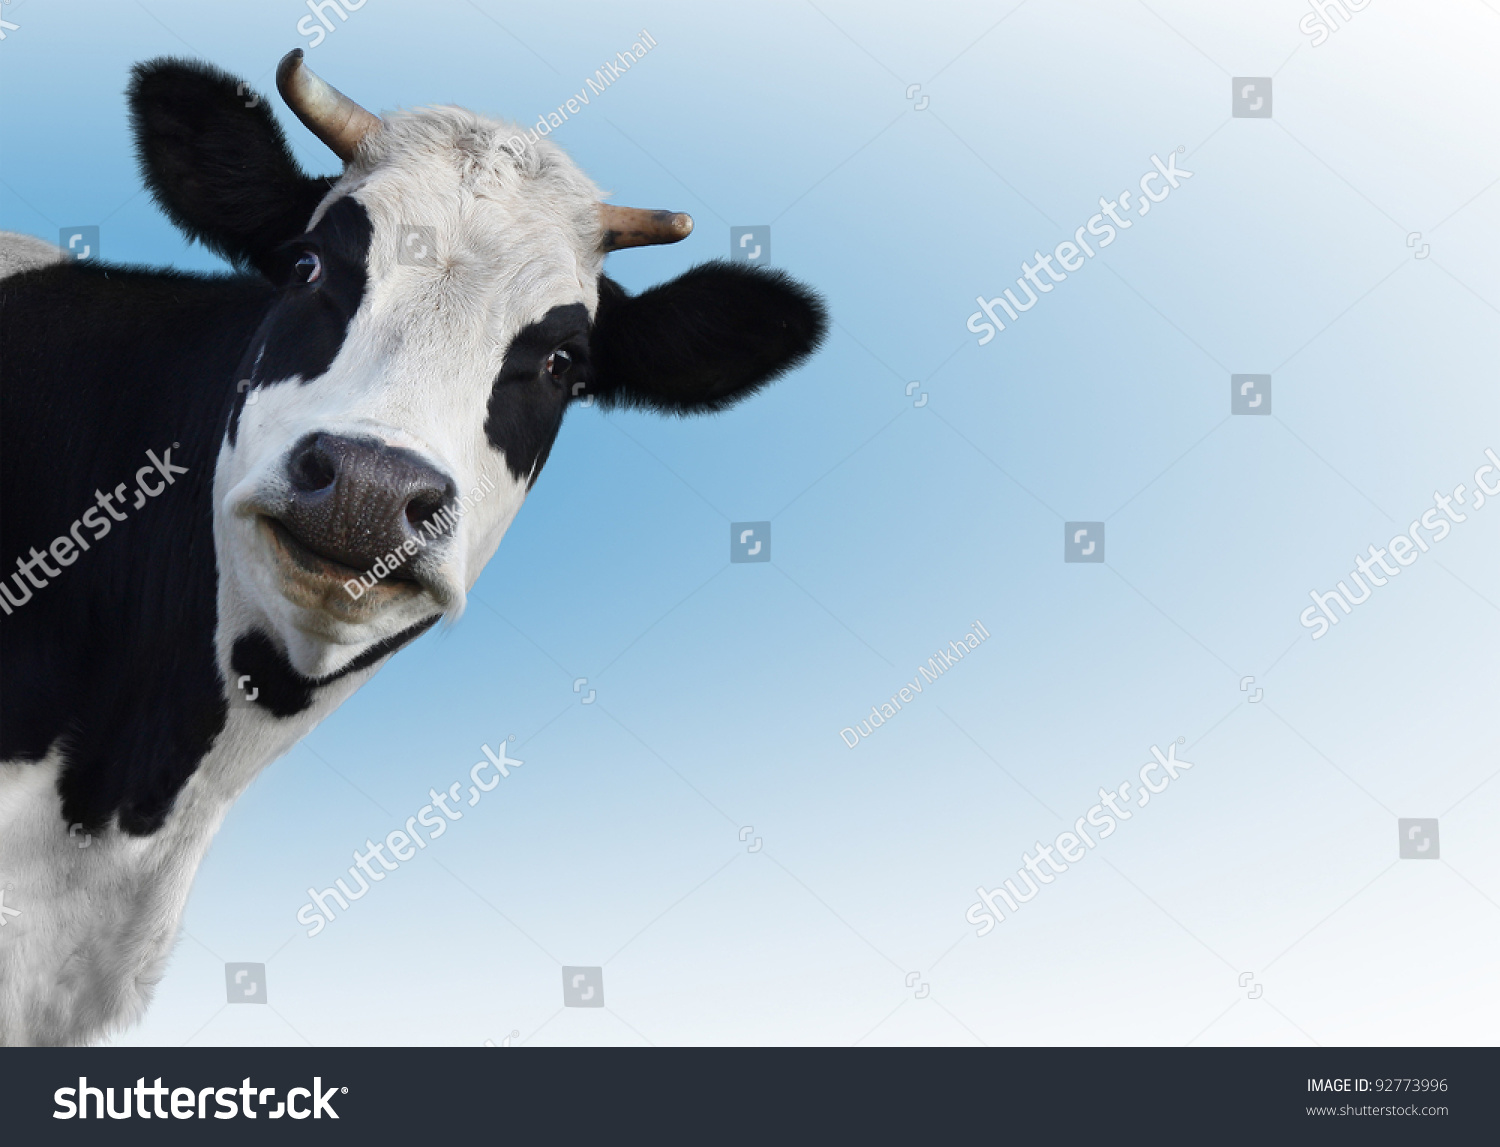 Funny cow smiling - photo#15